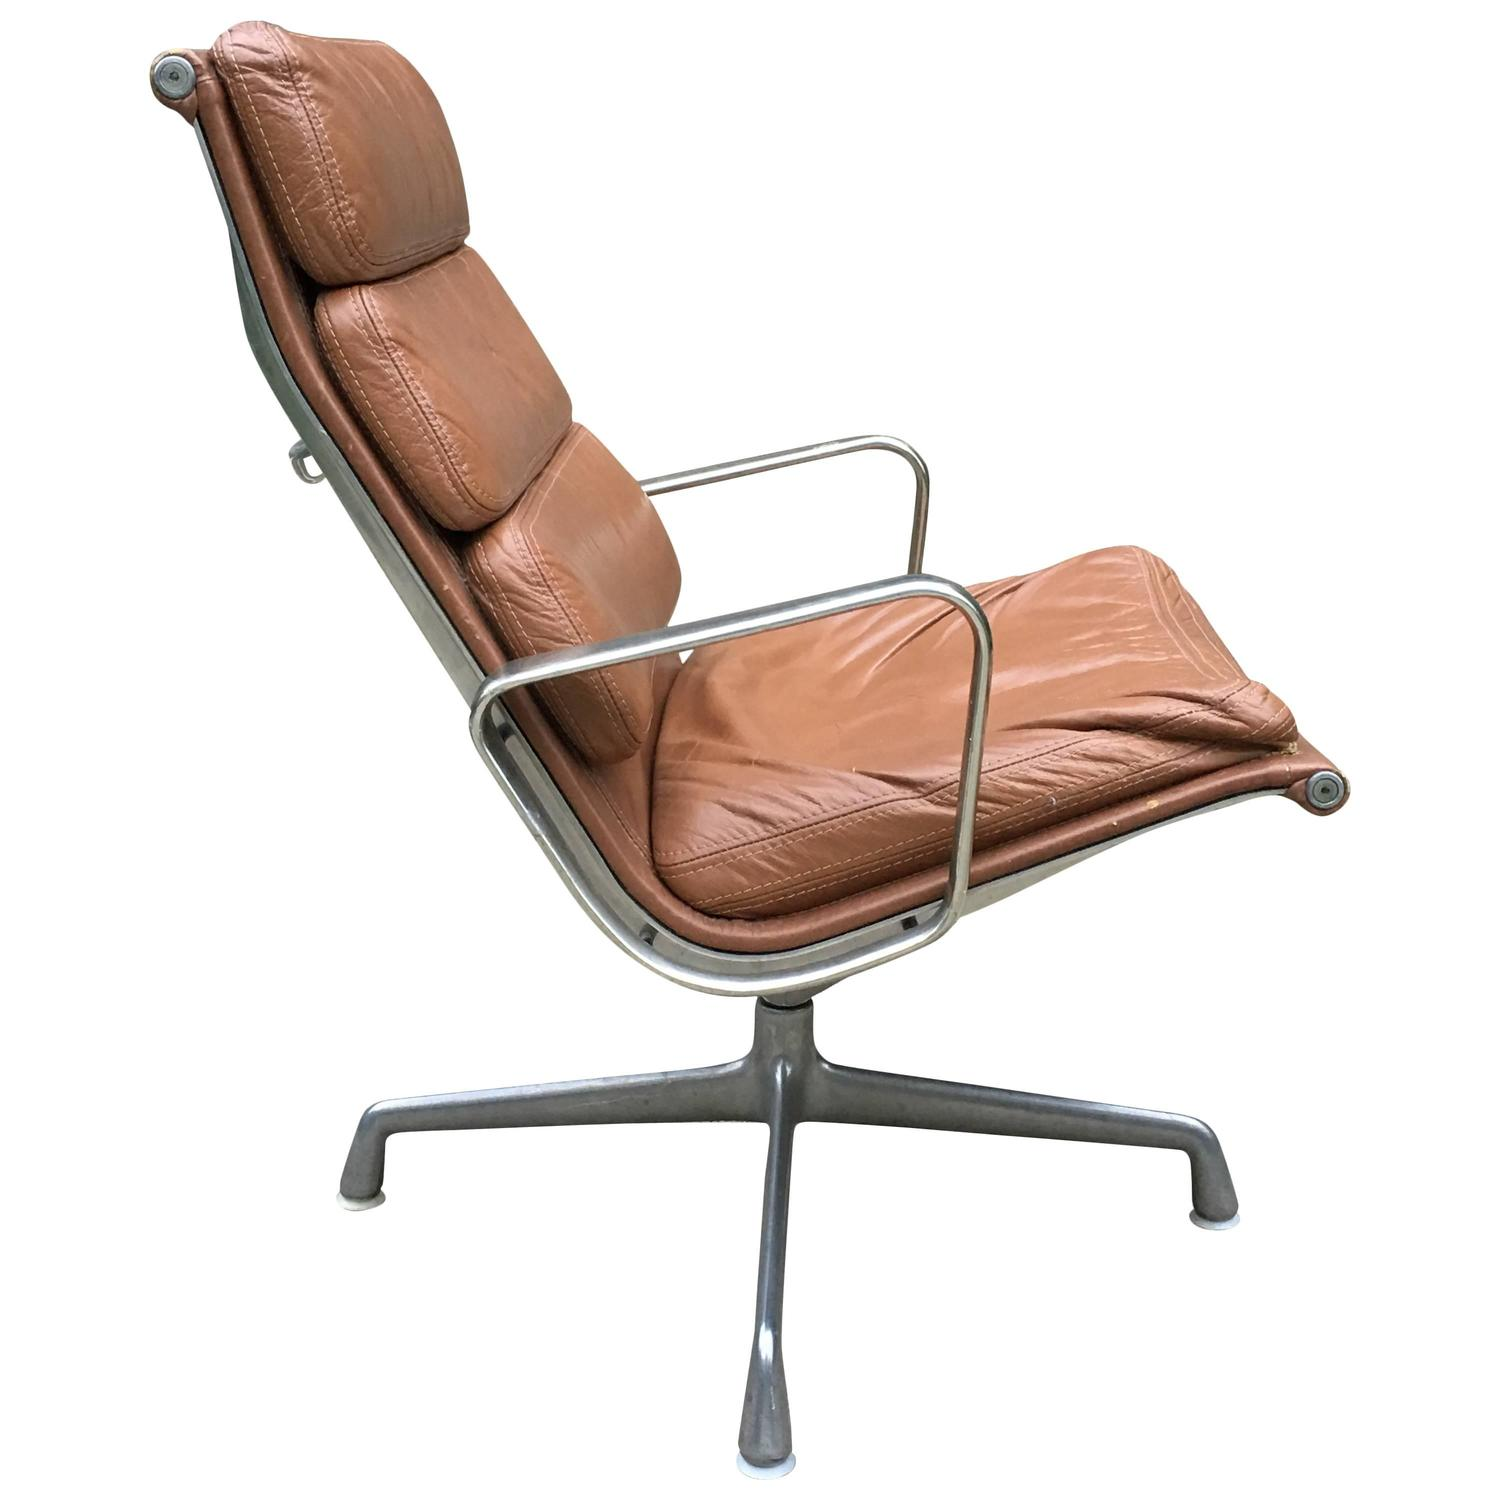 Original eames chair - Herman Miller Eames Aluminum Group Soft Pad Lounge Chair